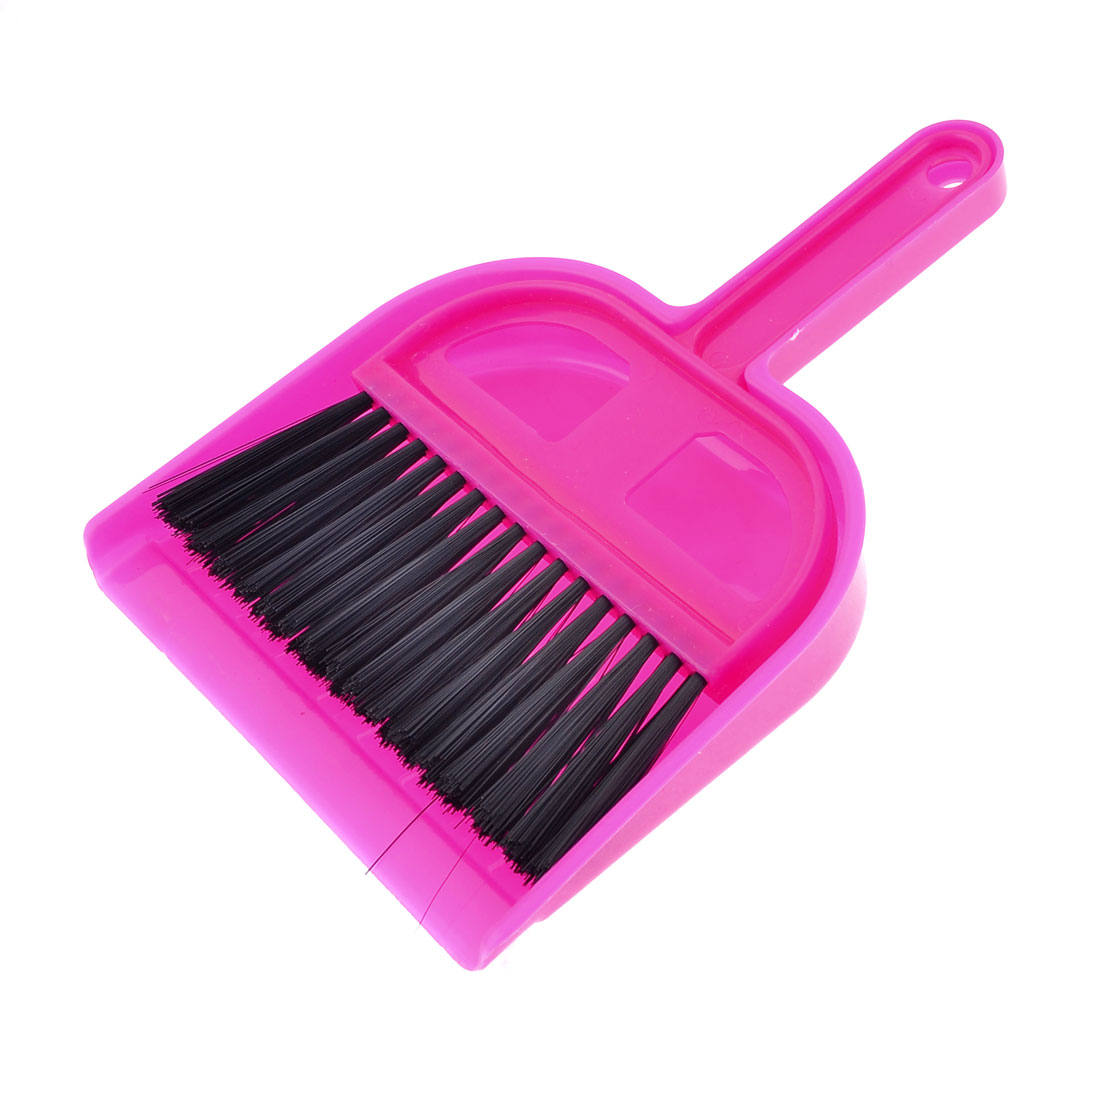 2 in 1 Fuchsia Plastic Nonslip Handle Mini Whisk Broom Brush Dustpan Set